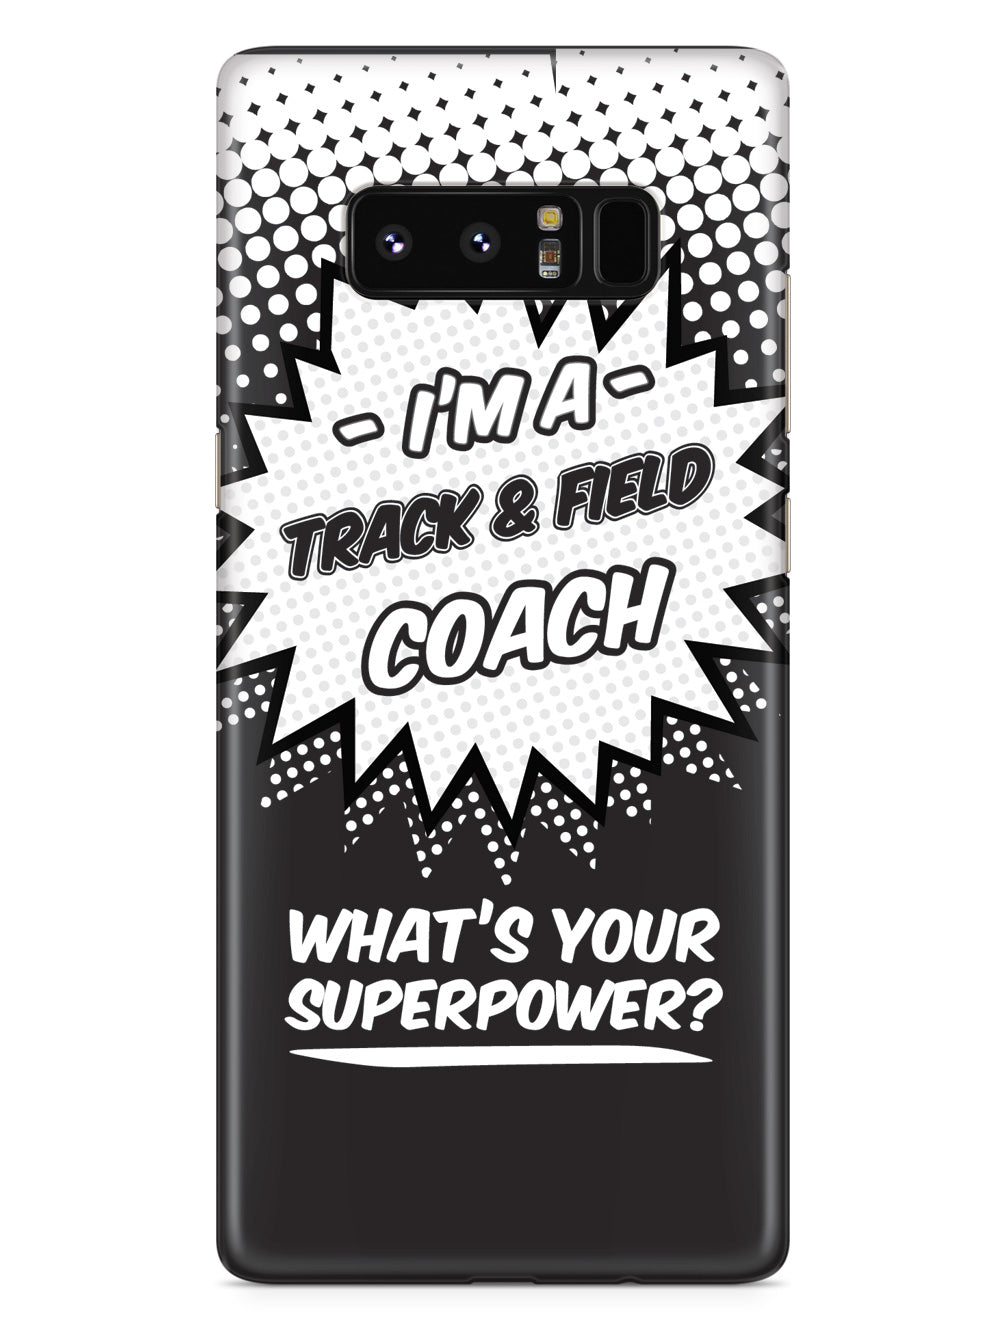 Track & Field Coach - What's Your Superpower? Case